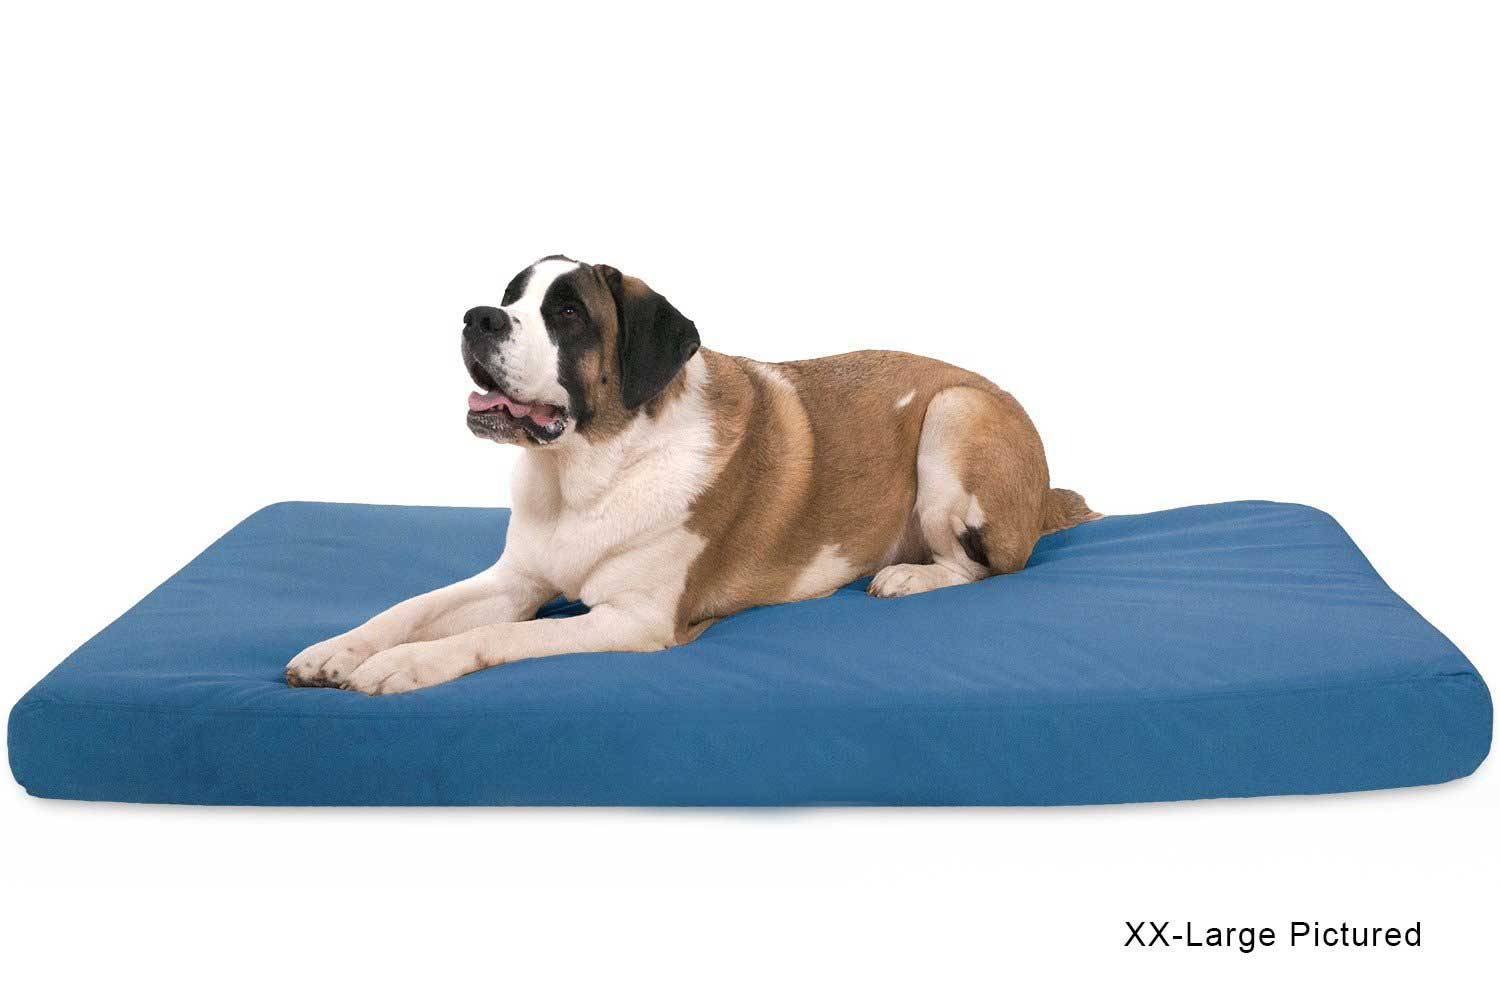 TUFF Orthopedic Dog Bed